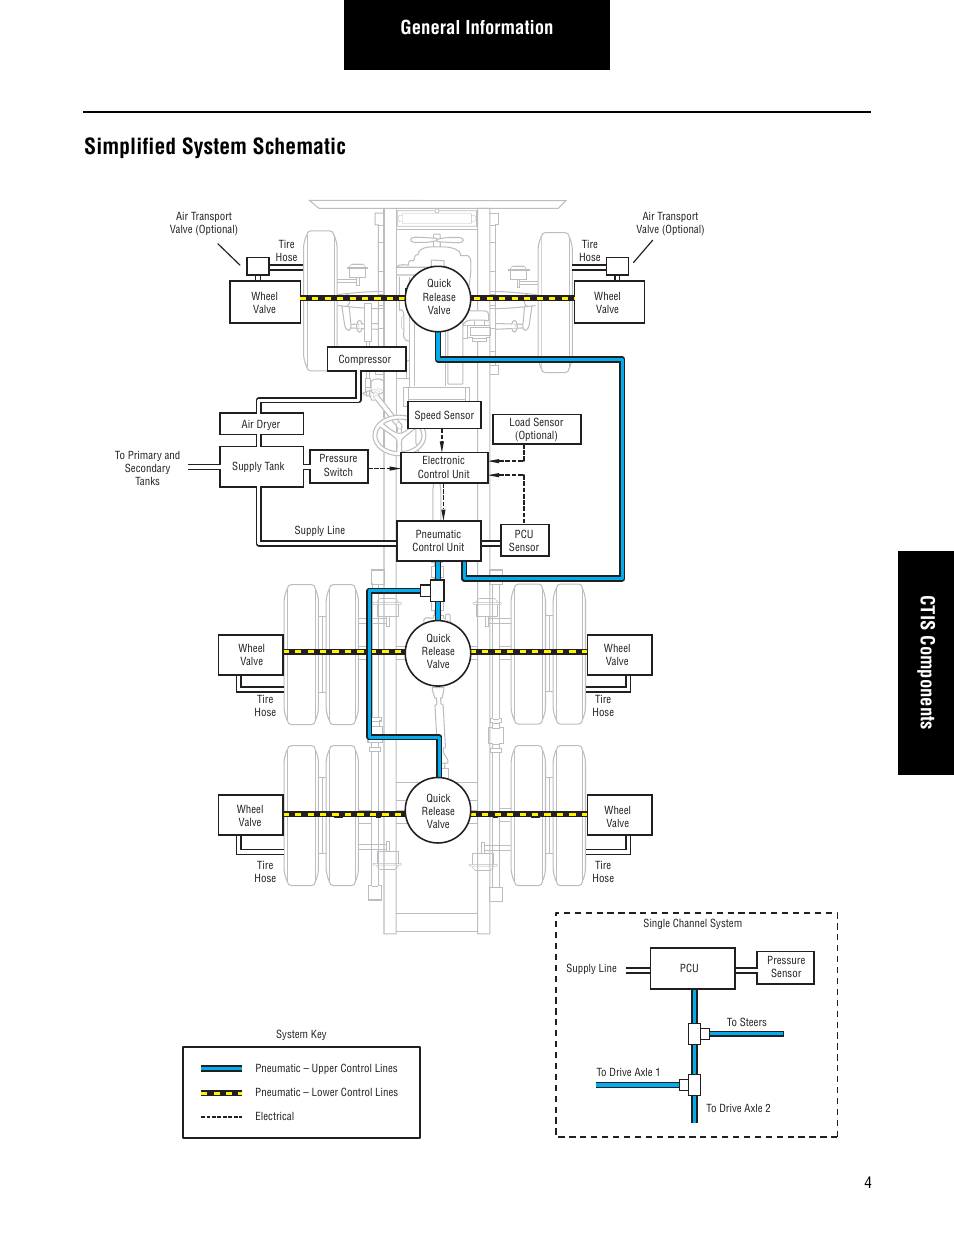 Fluid System Schematic The Valves And Important Manual Guide